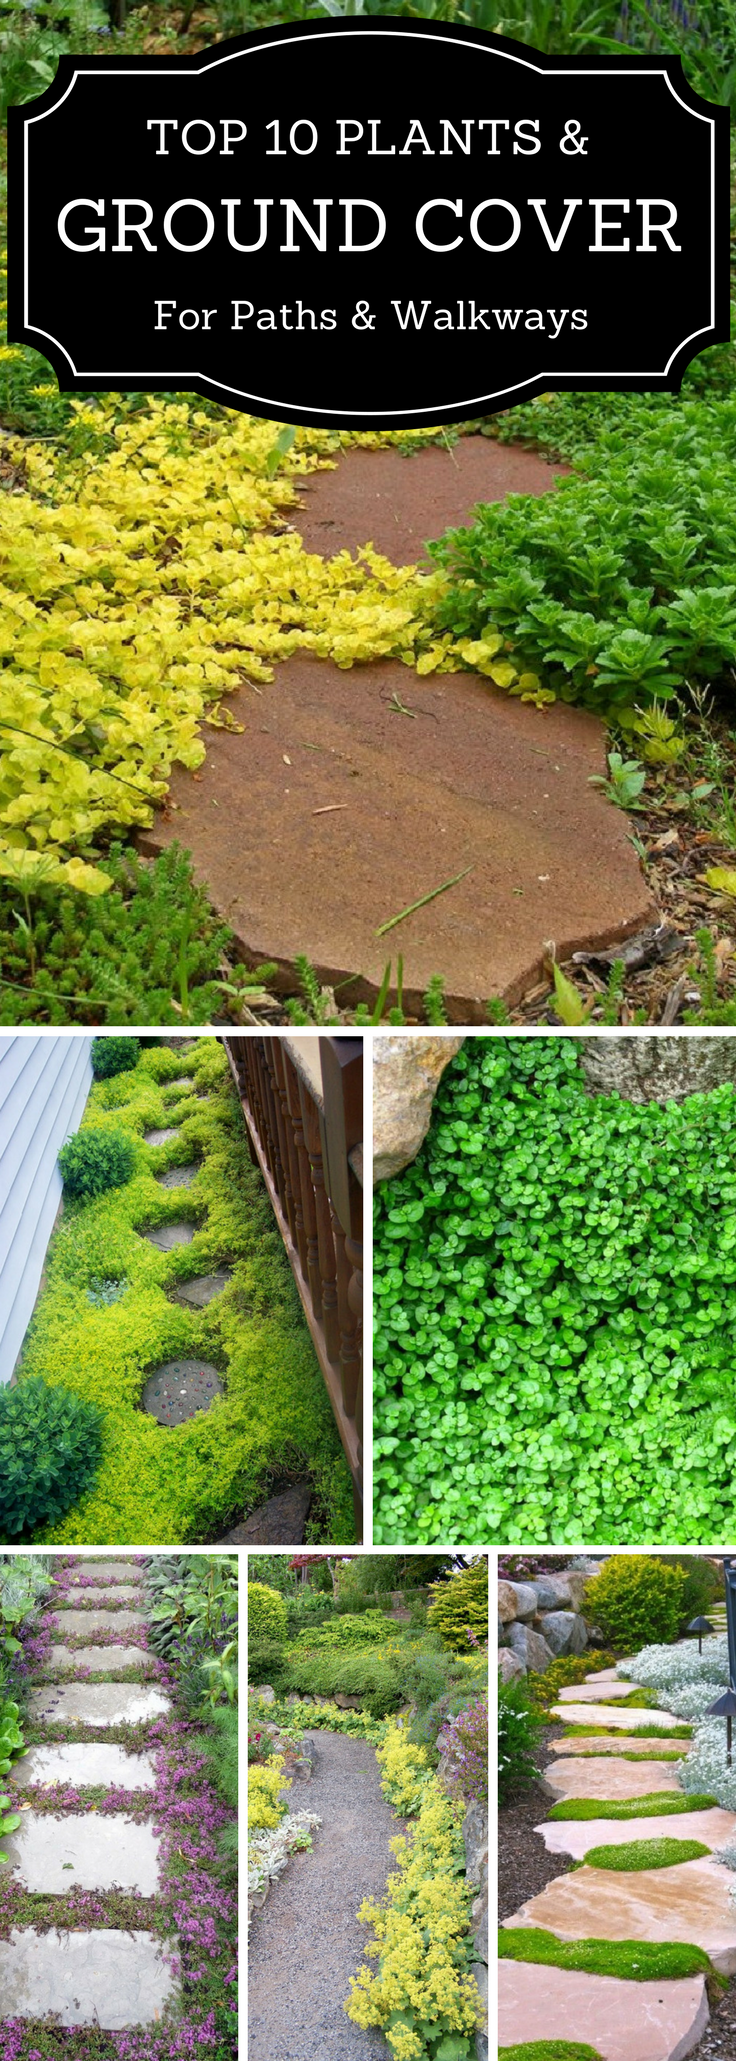 Ground Cover Plants For Walkways And Paths